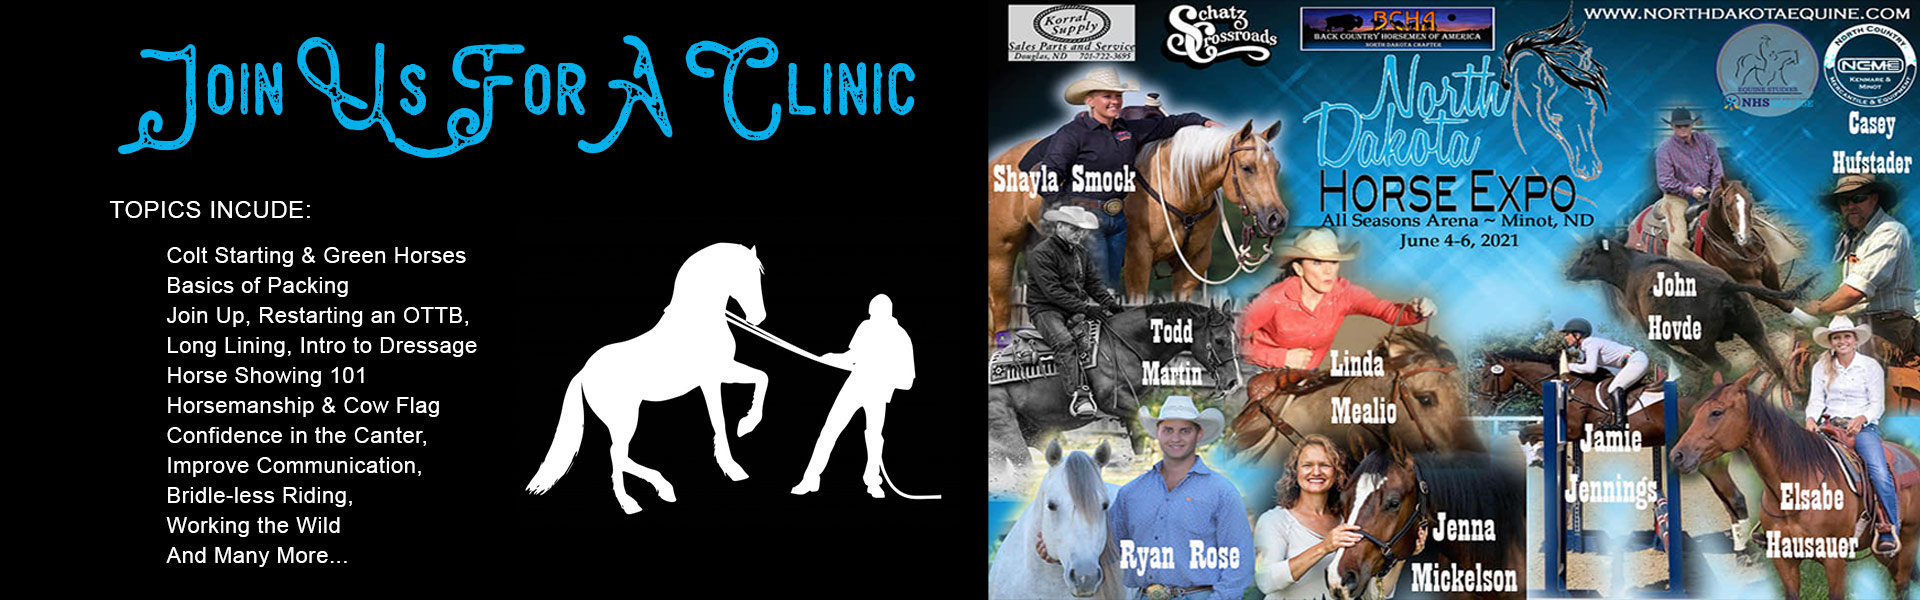 Join Us for a Clinic